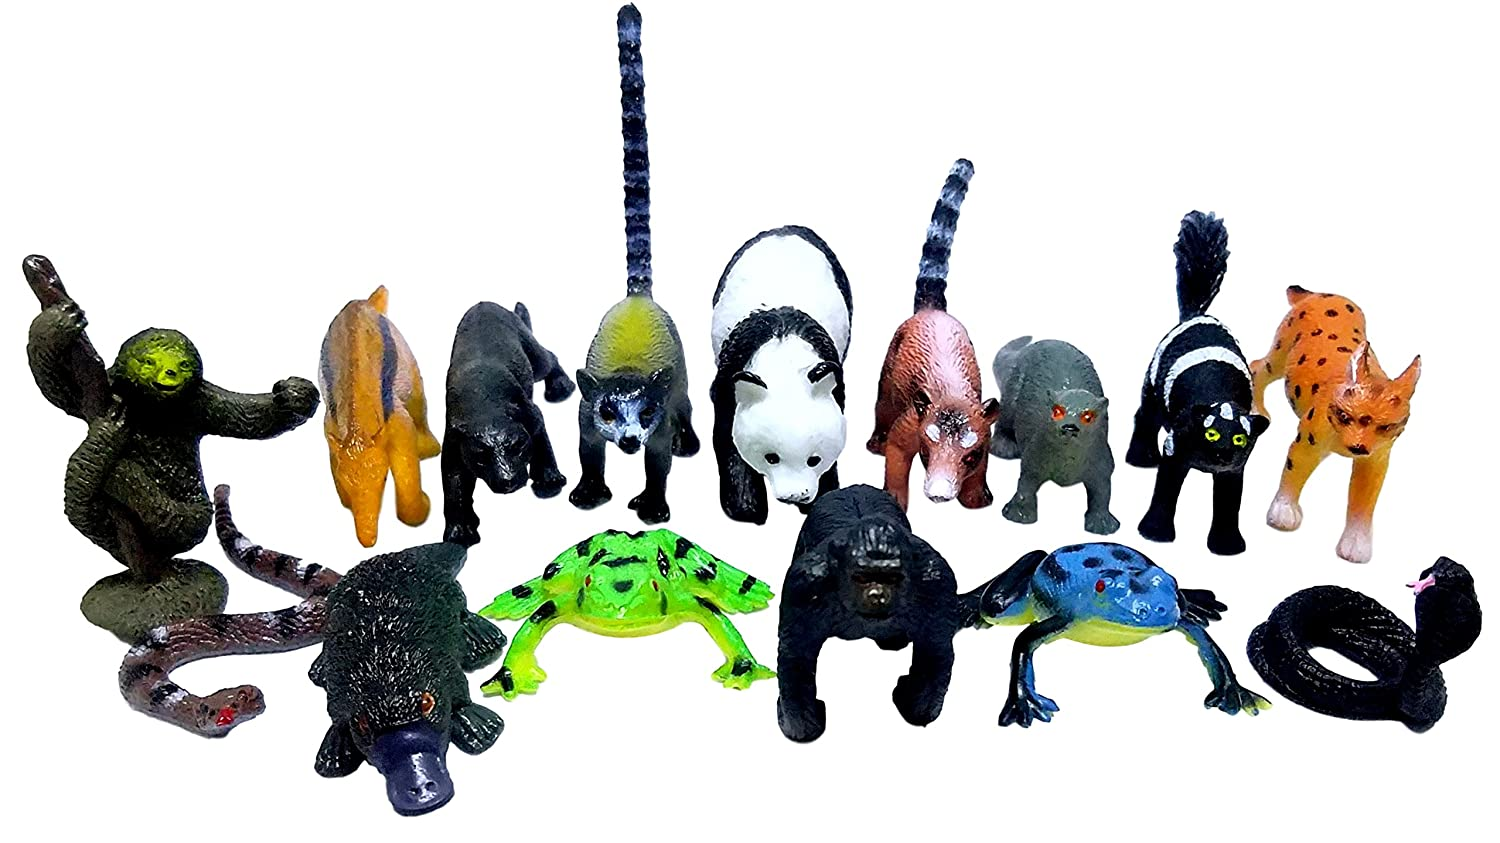 Mini Safari Jungle Rain Forest Animals Play Set Bag Stuffer Gift 30 ct Prize Pinata Filler Educational Counting /& Sensory Toys Assorted Creatures - Kids Miniature Party Favors 2 Sets of 15